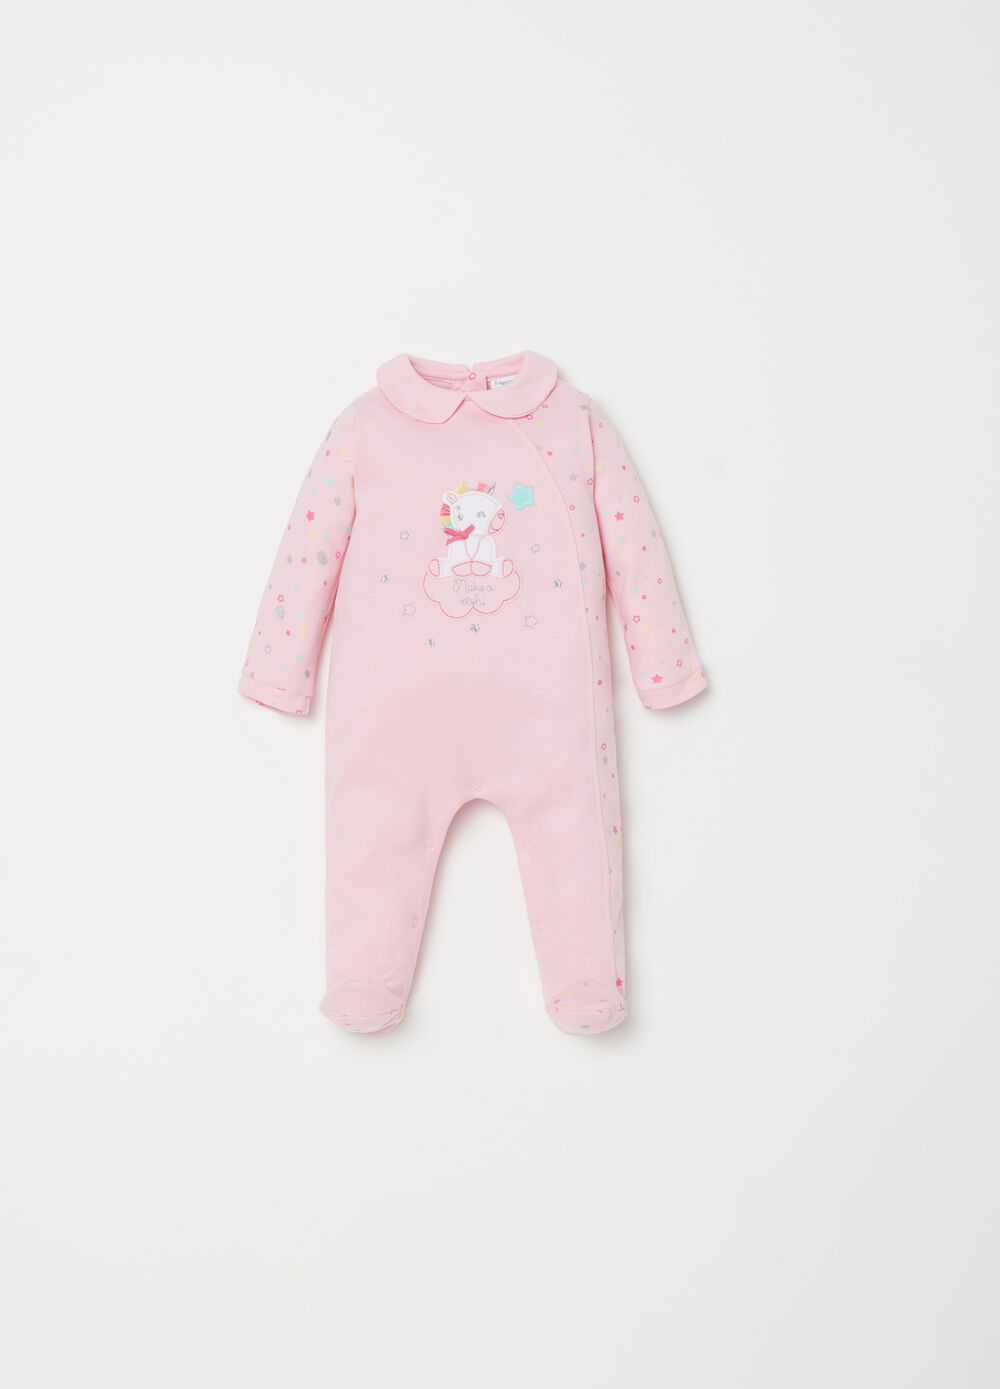 Onesie with feet, stars and applications